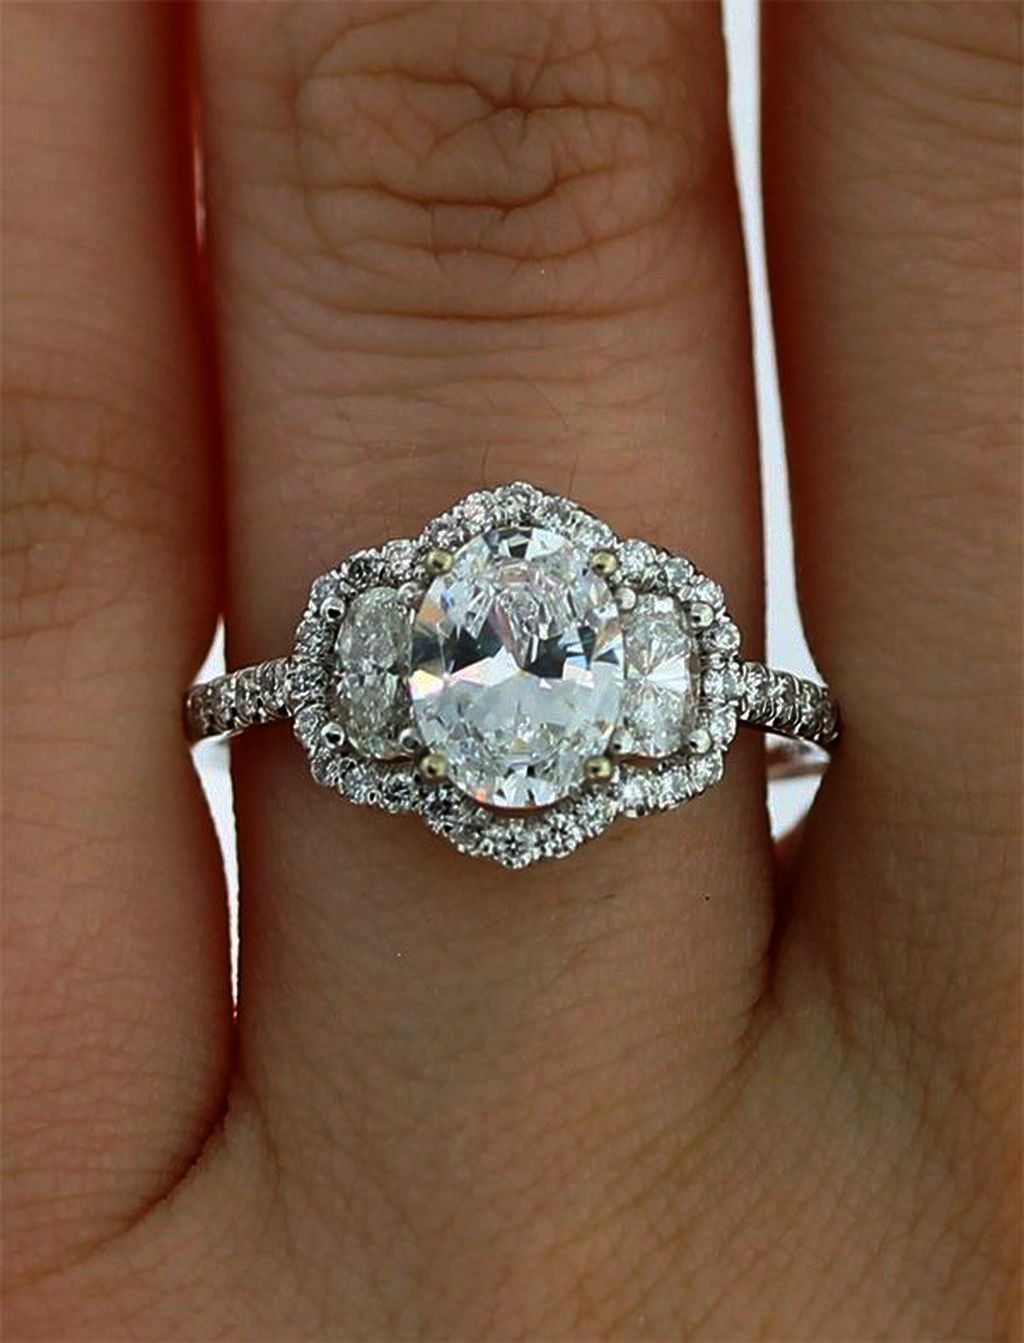 Value Of Used Engagement Ring Antique Engagement Ring Edwardian